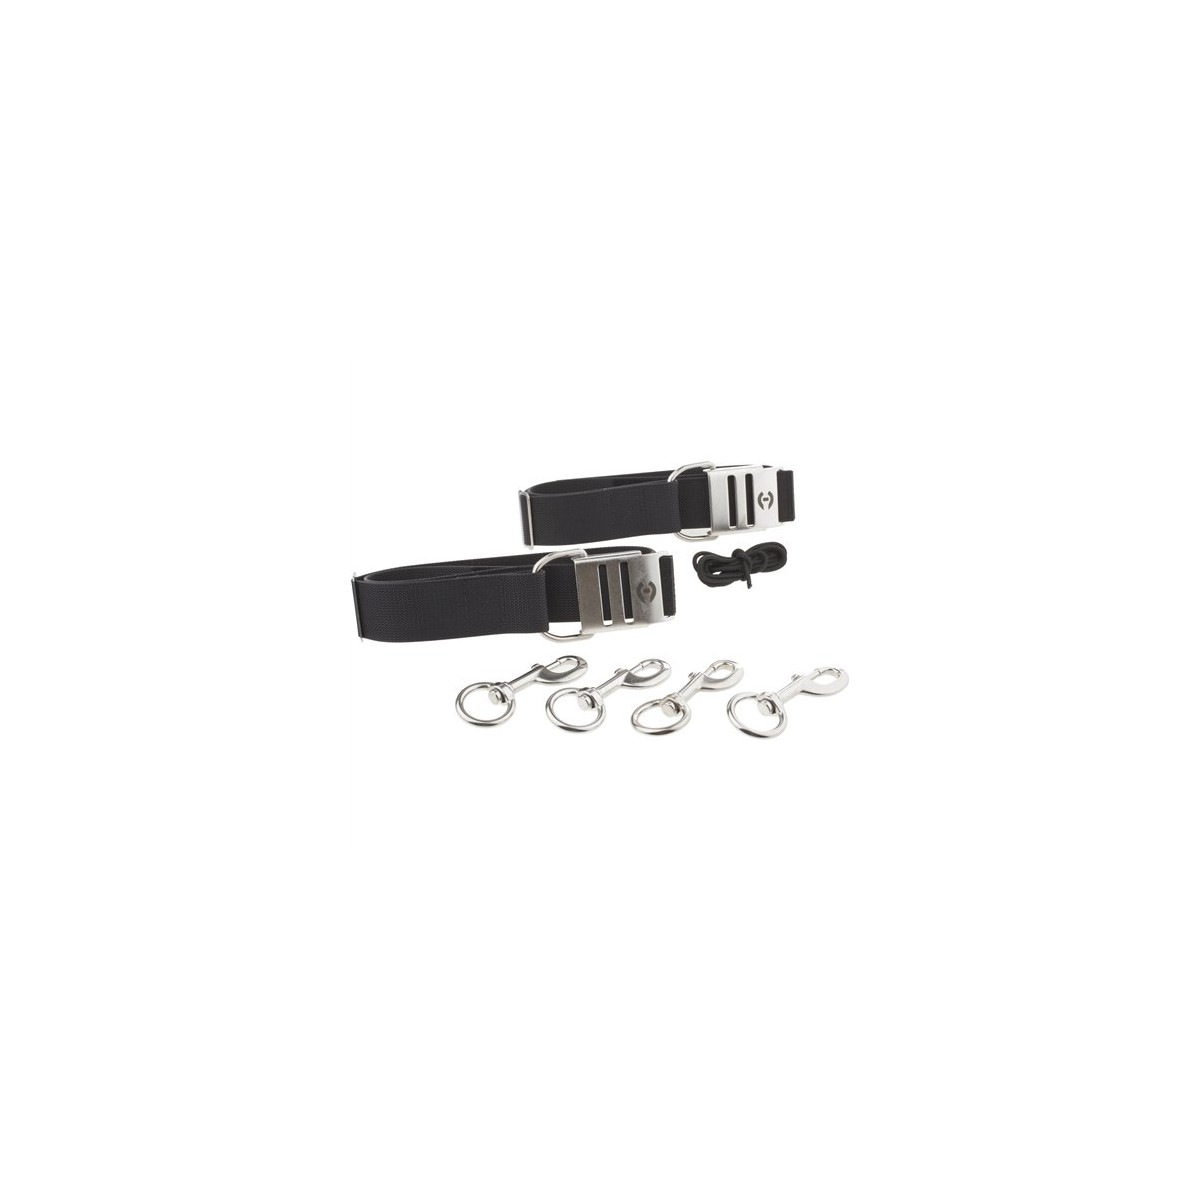 Hollis Sms 100 Rigging Kit